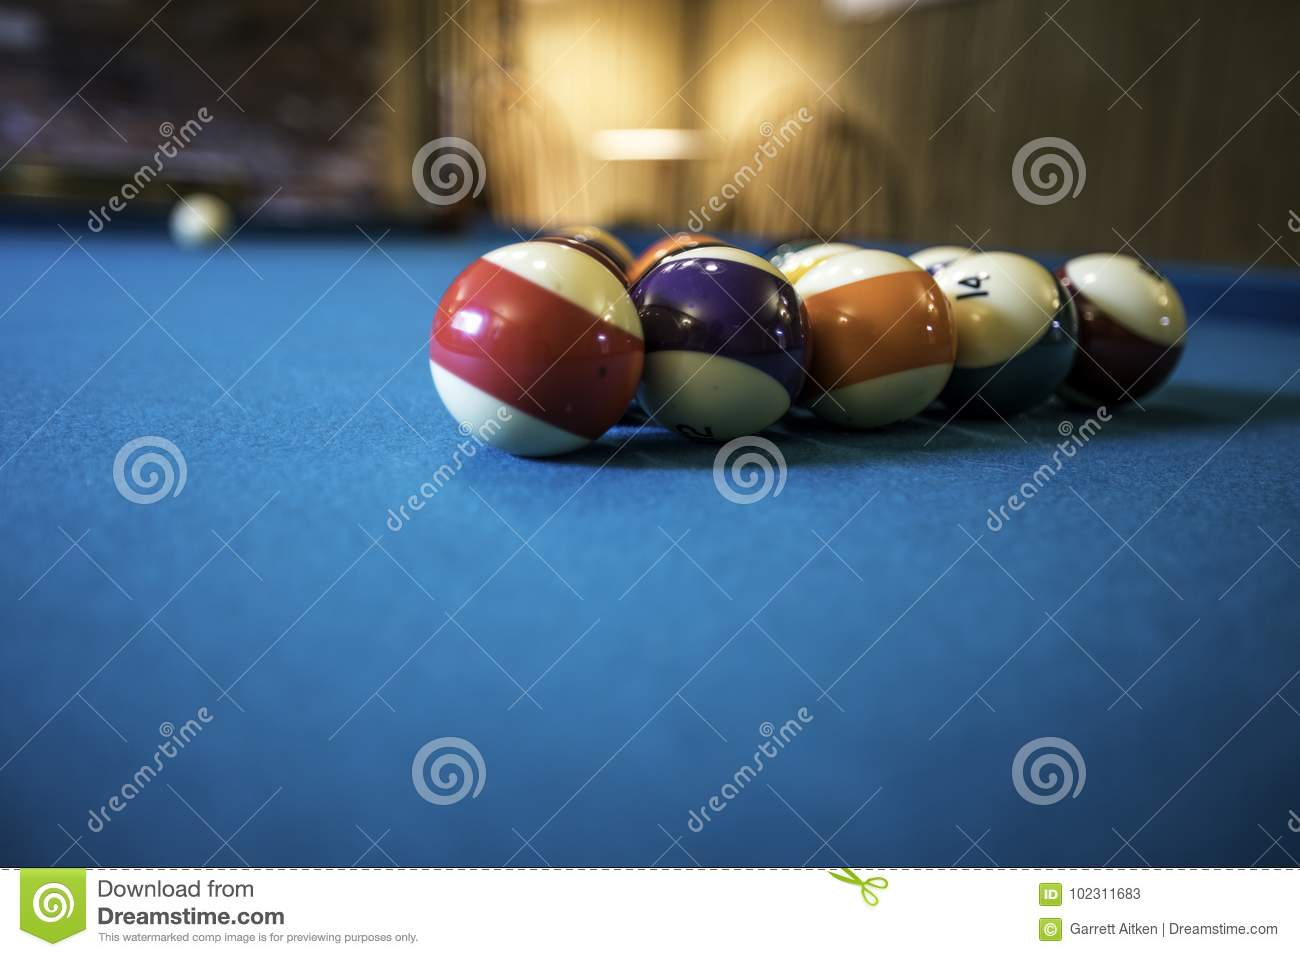 Pool Table stock image. Image of recreation, indoors - 102311683